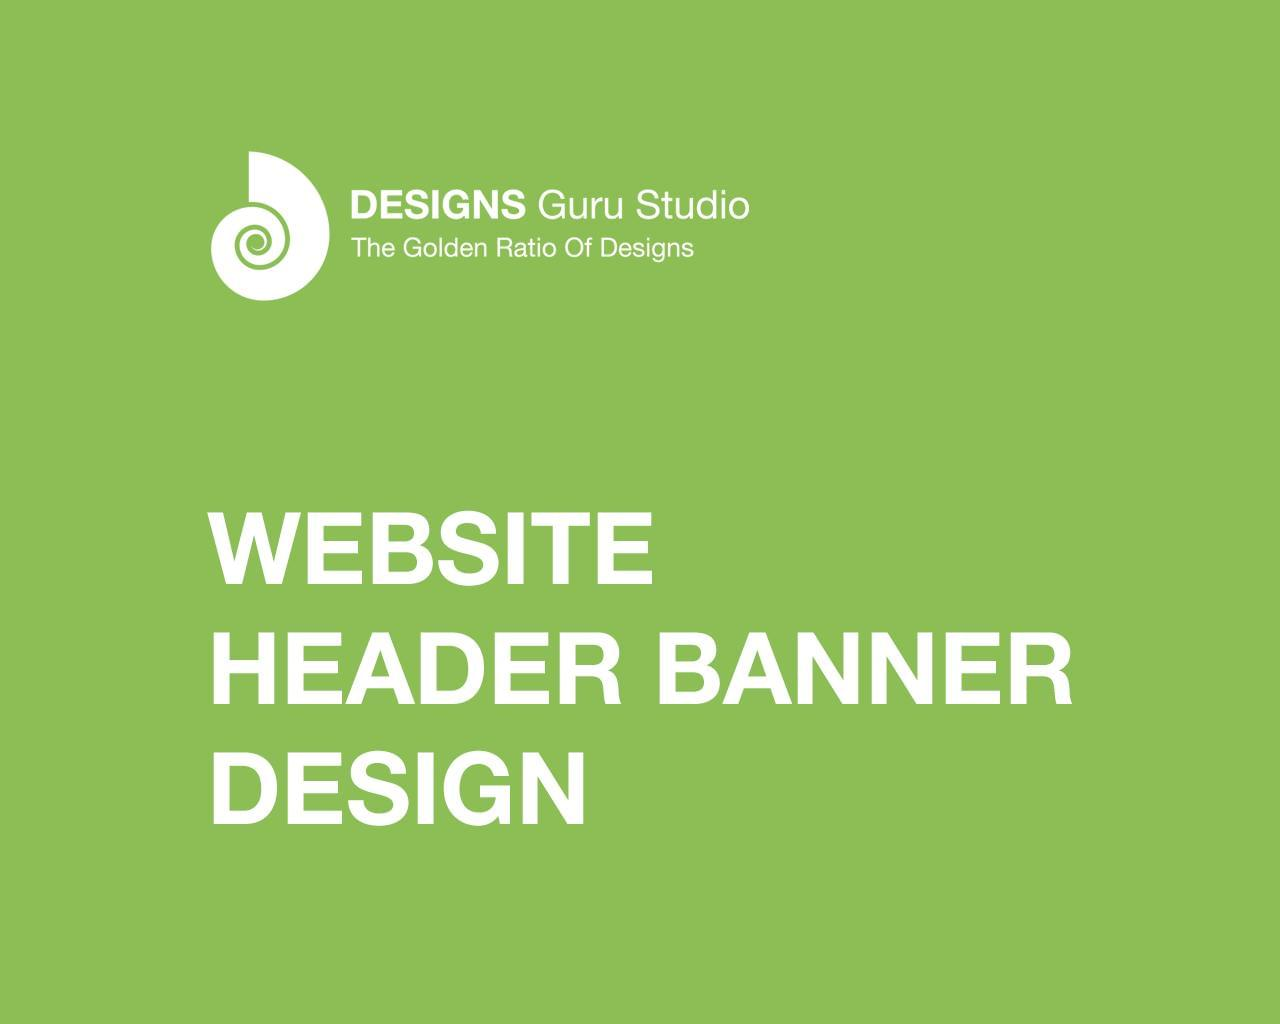 Website Header Banner Design by designsgurustudio - 117062